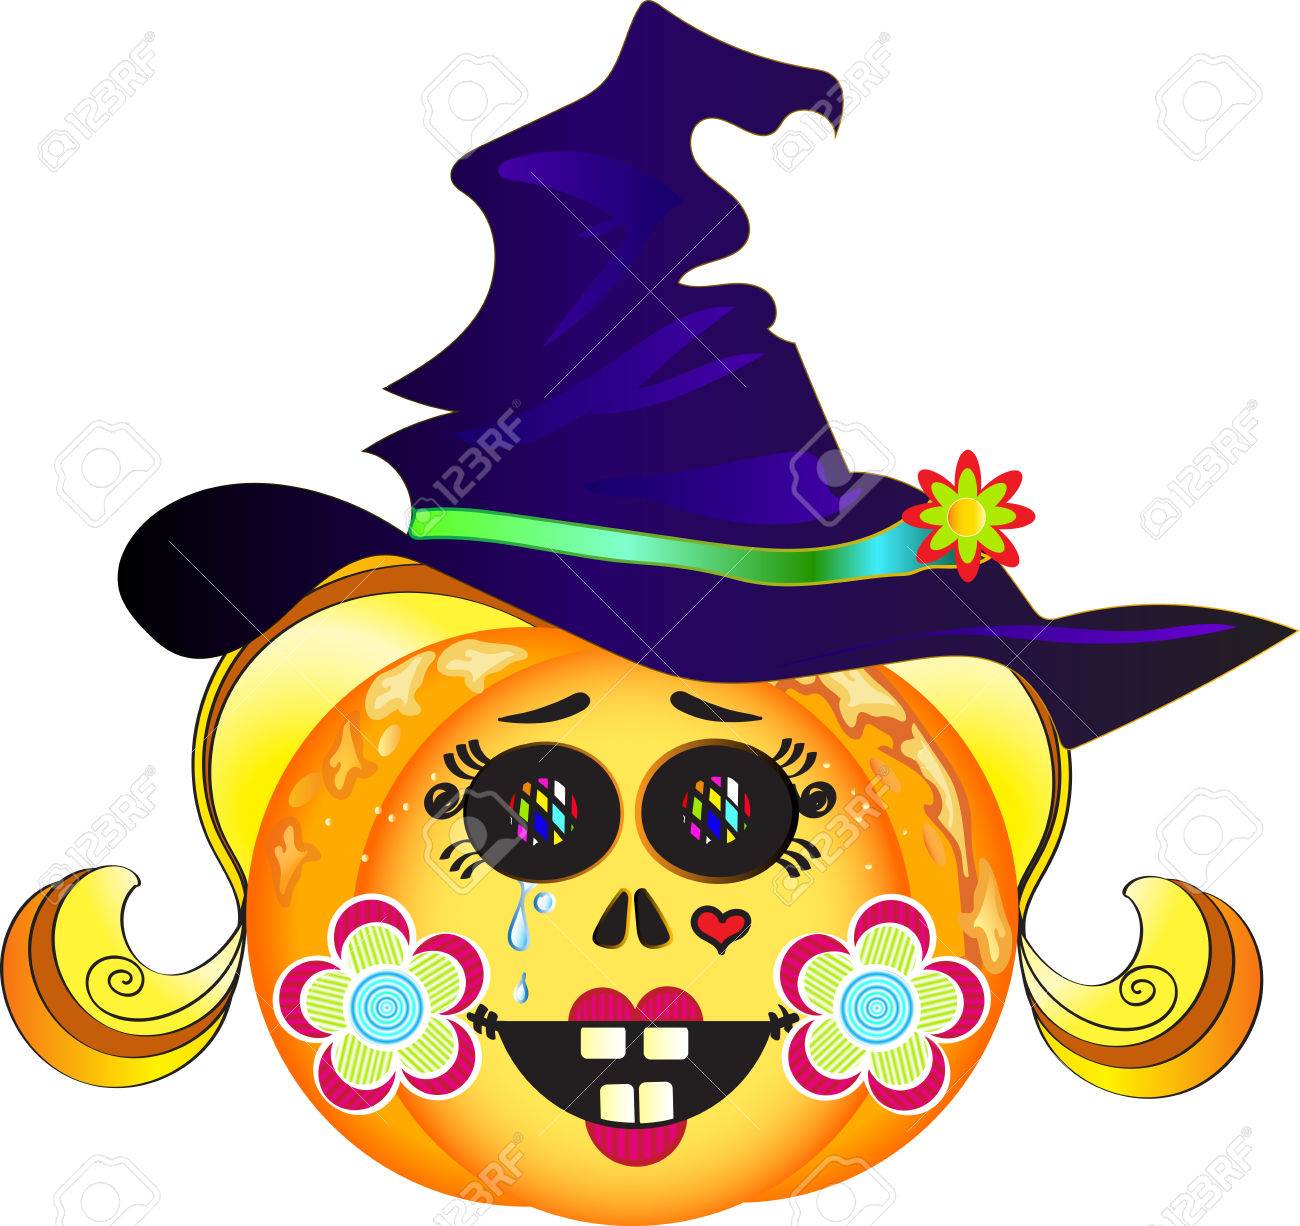 Illustration Of Smiling Halloween Pumpkin With Hat, Colorful.